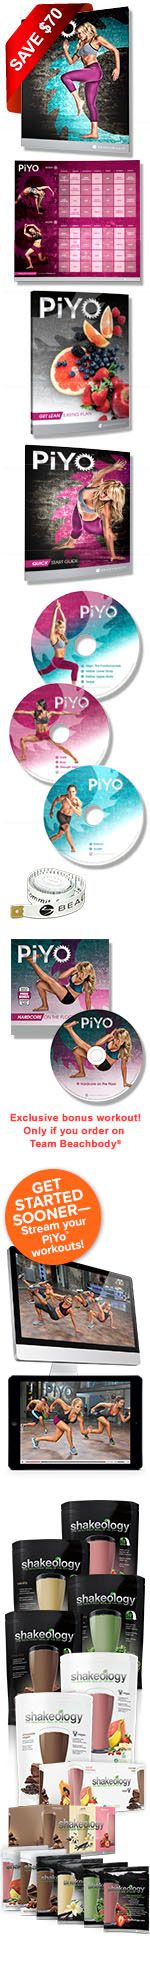 3 days left to save $70 when ordering PiYo challenge pack!